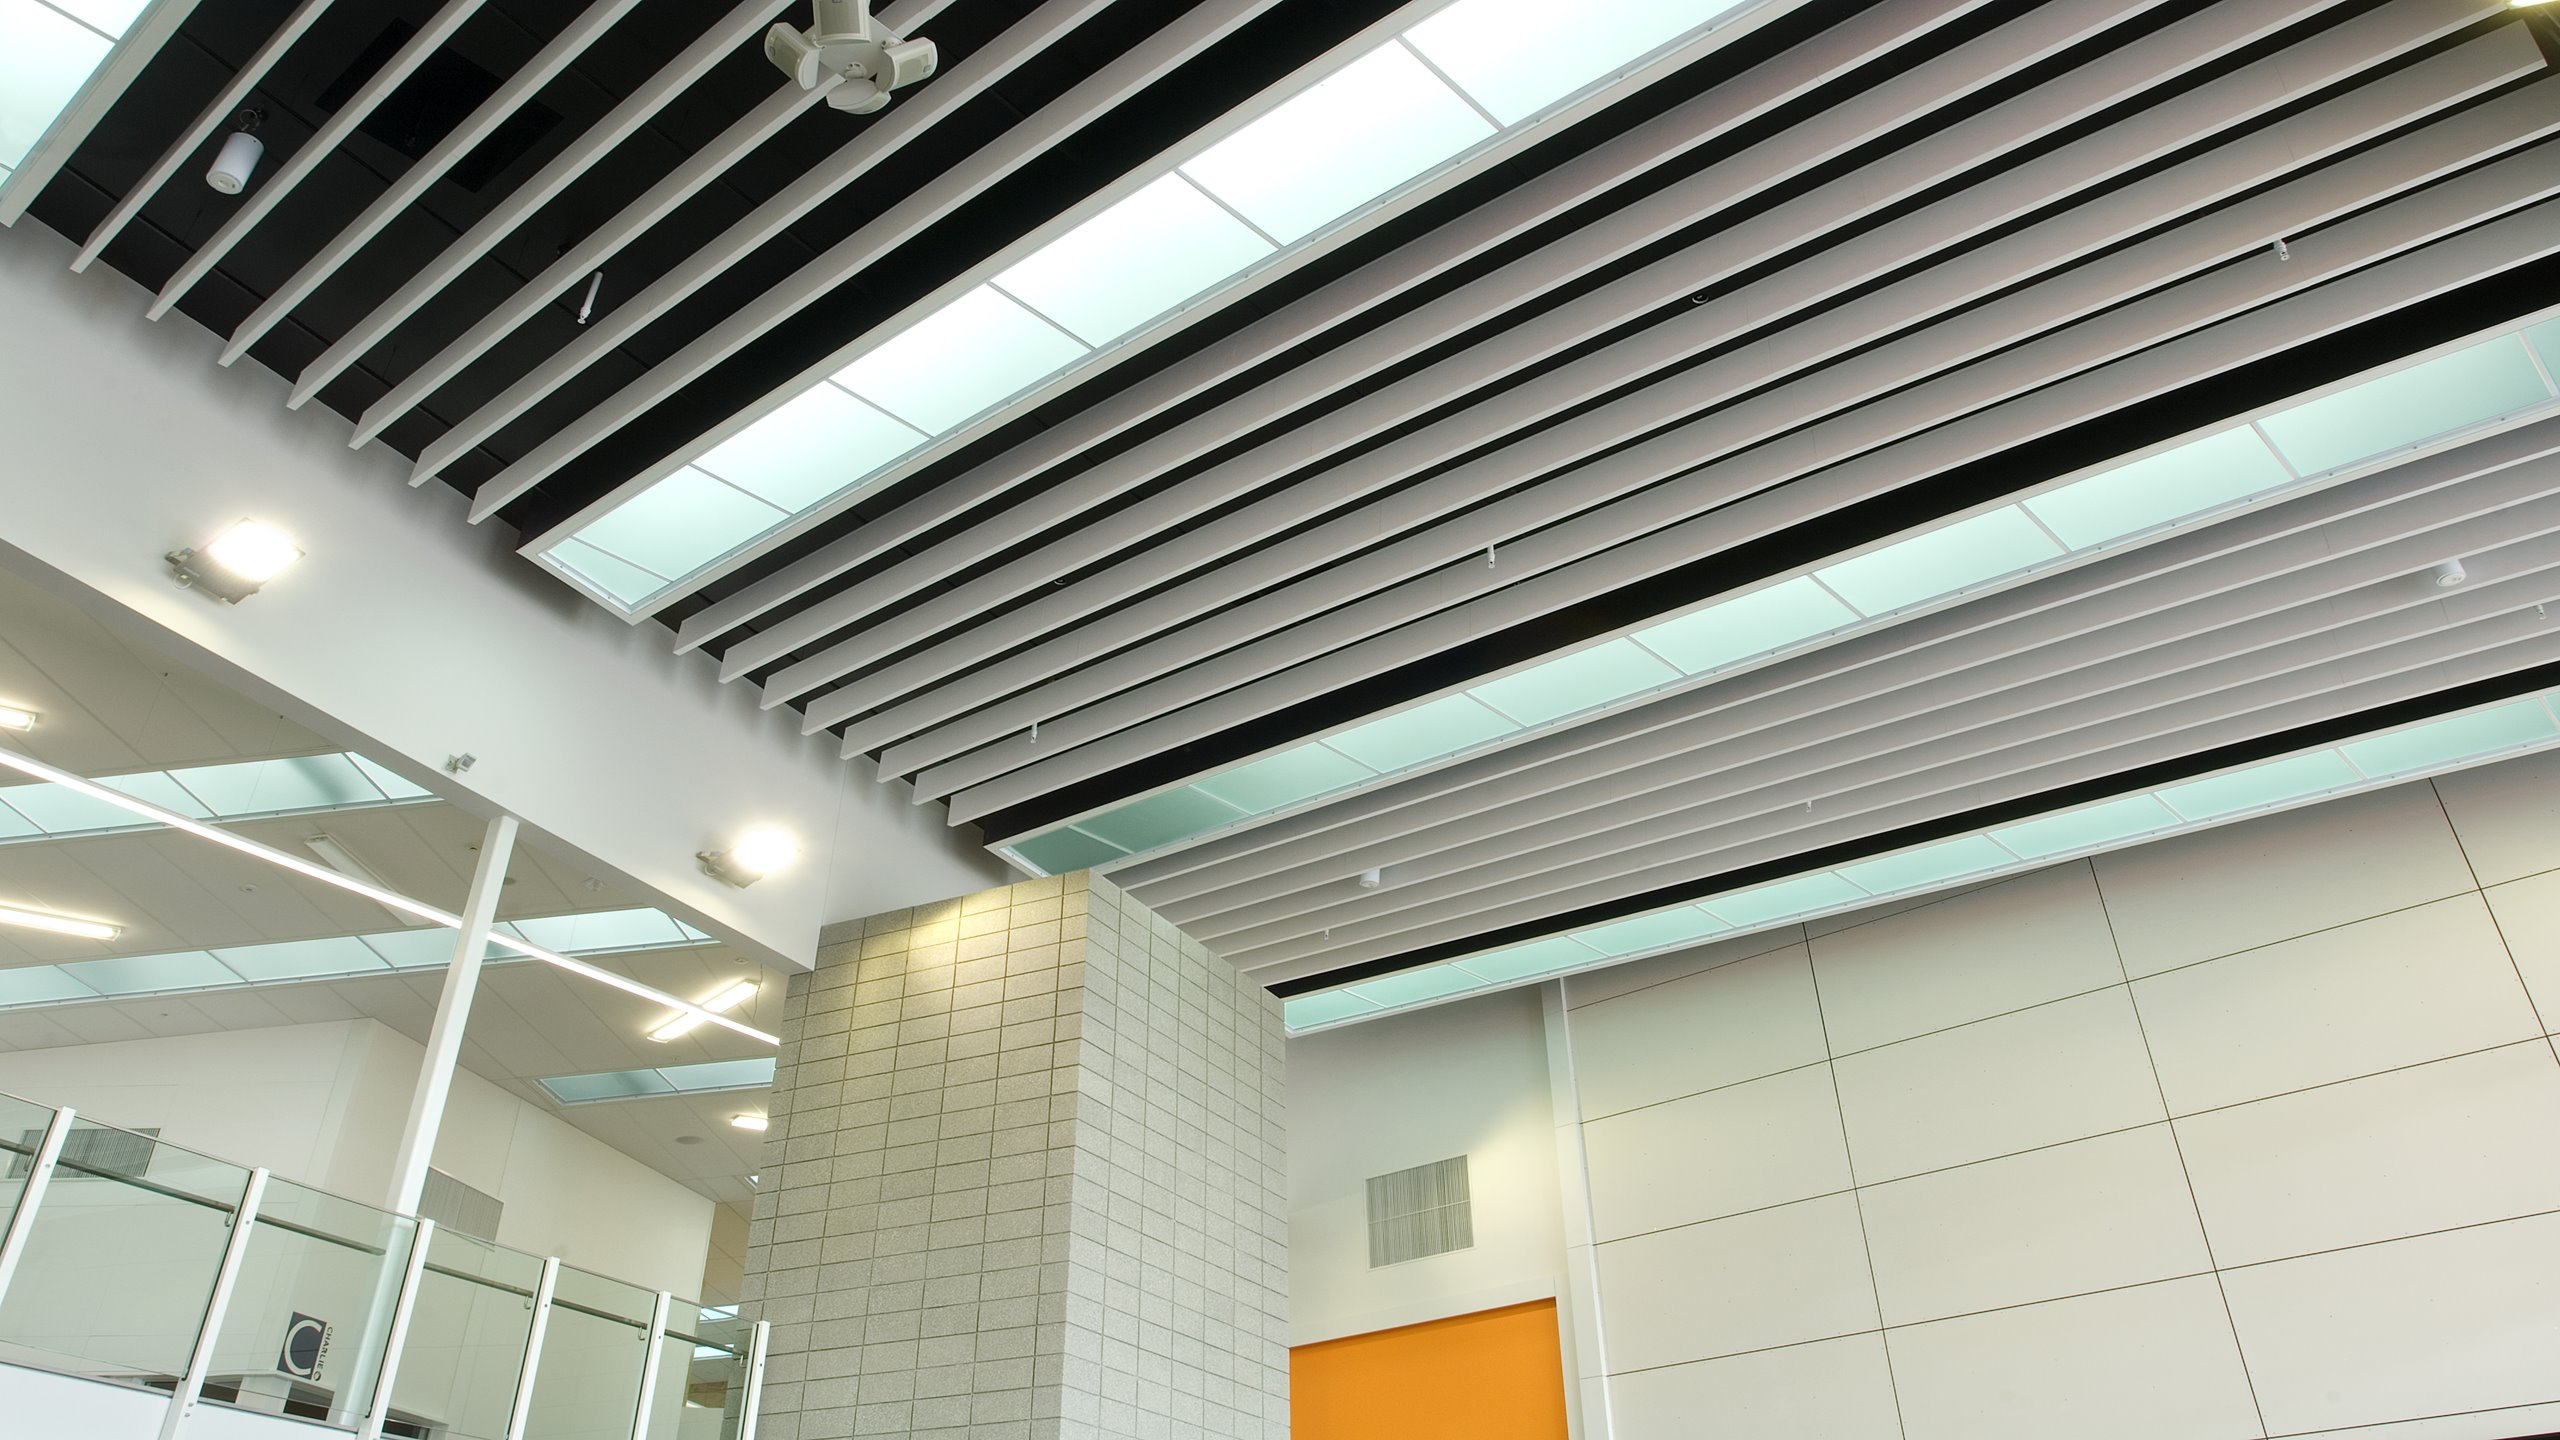 Hobsonville Point intermediate entrance Atrium showing white continiuos Baffle Beams direct fixed to ceiling